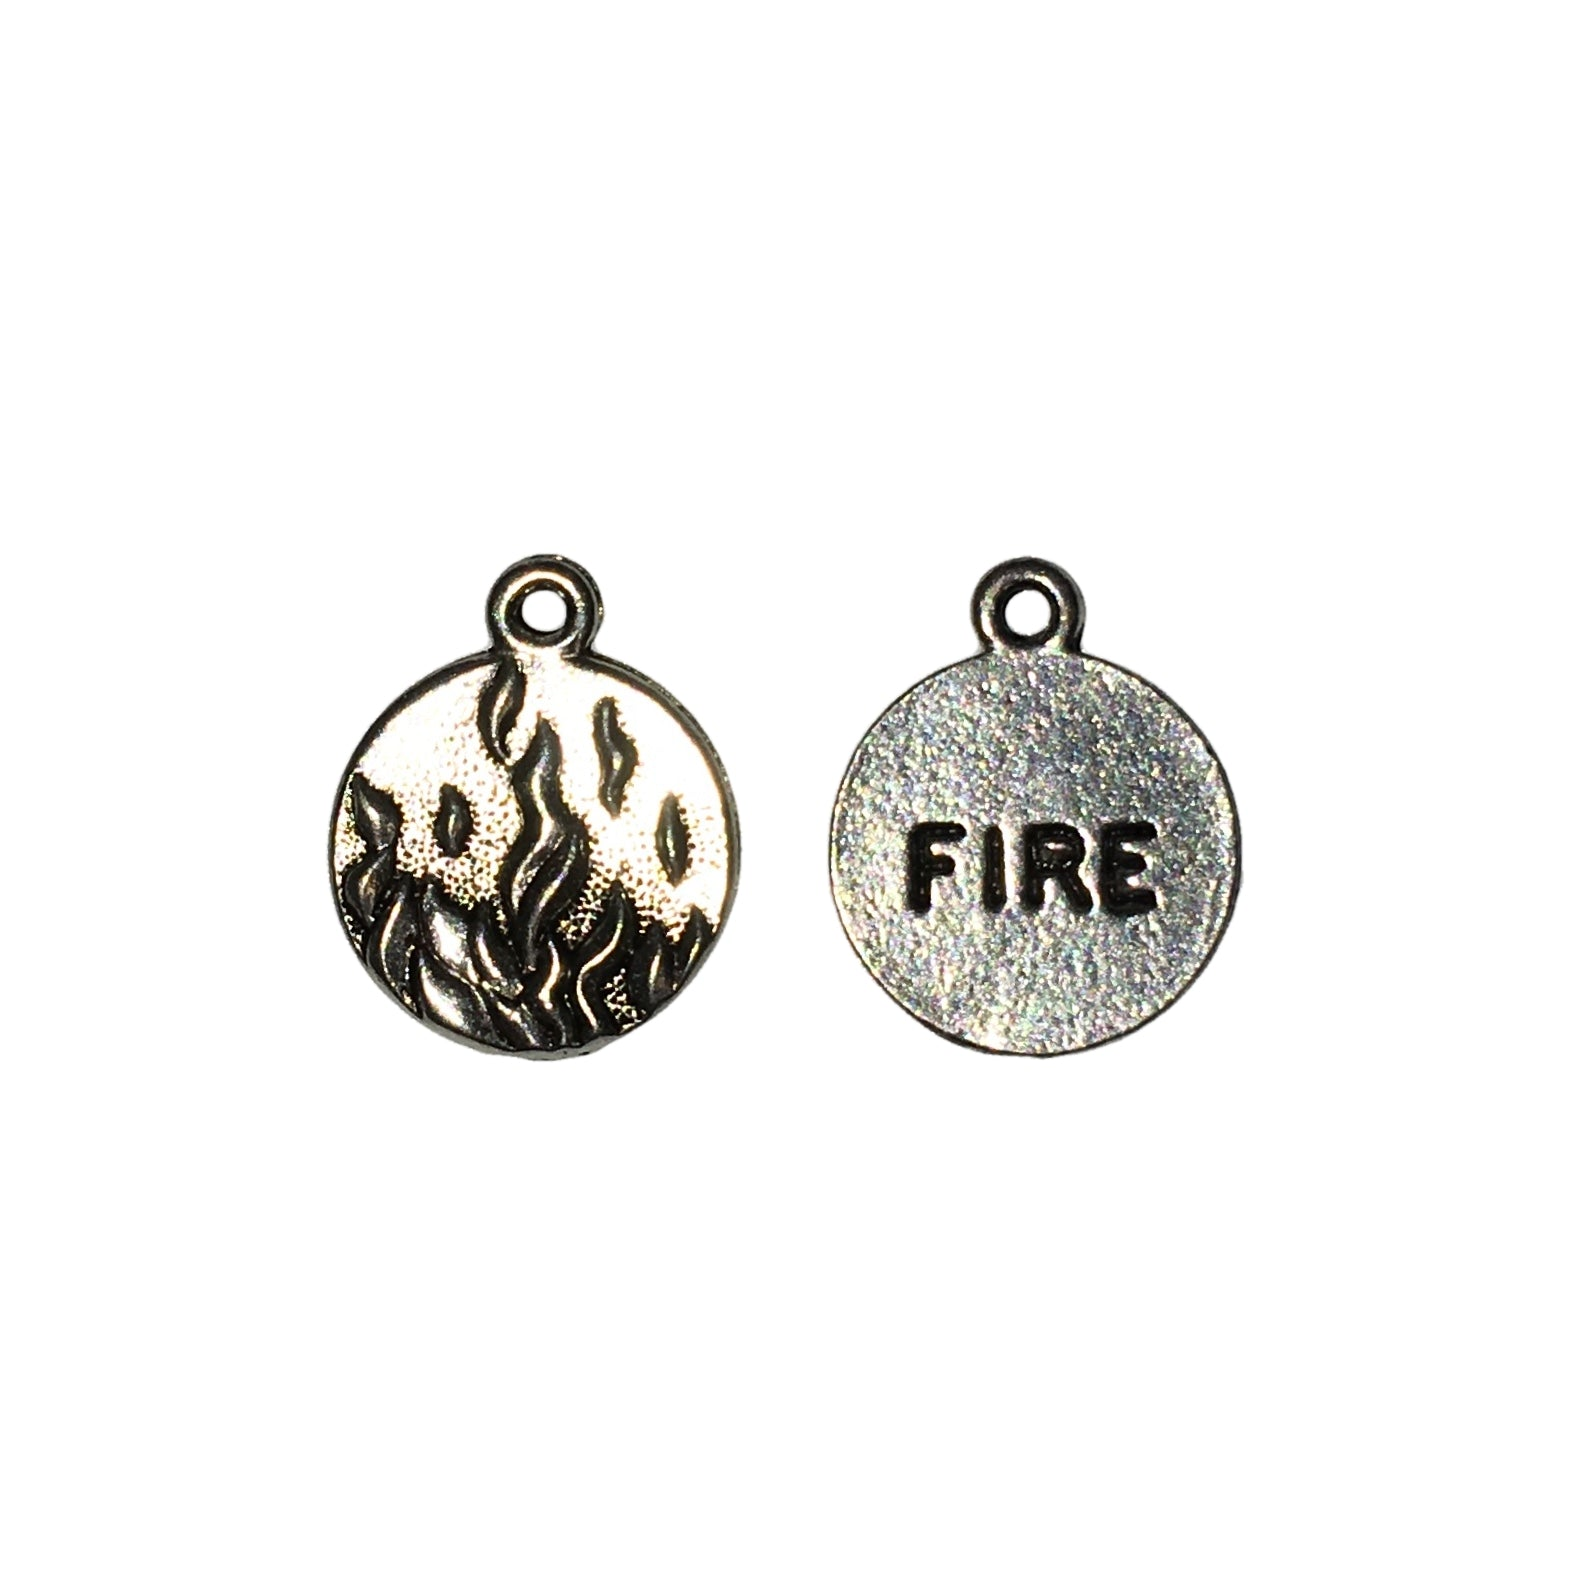 Fire Element Charms - Qty of 5 Charms - Lead Free Pewter Silver - American Made